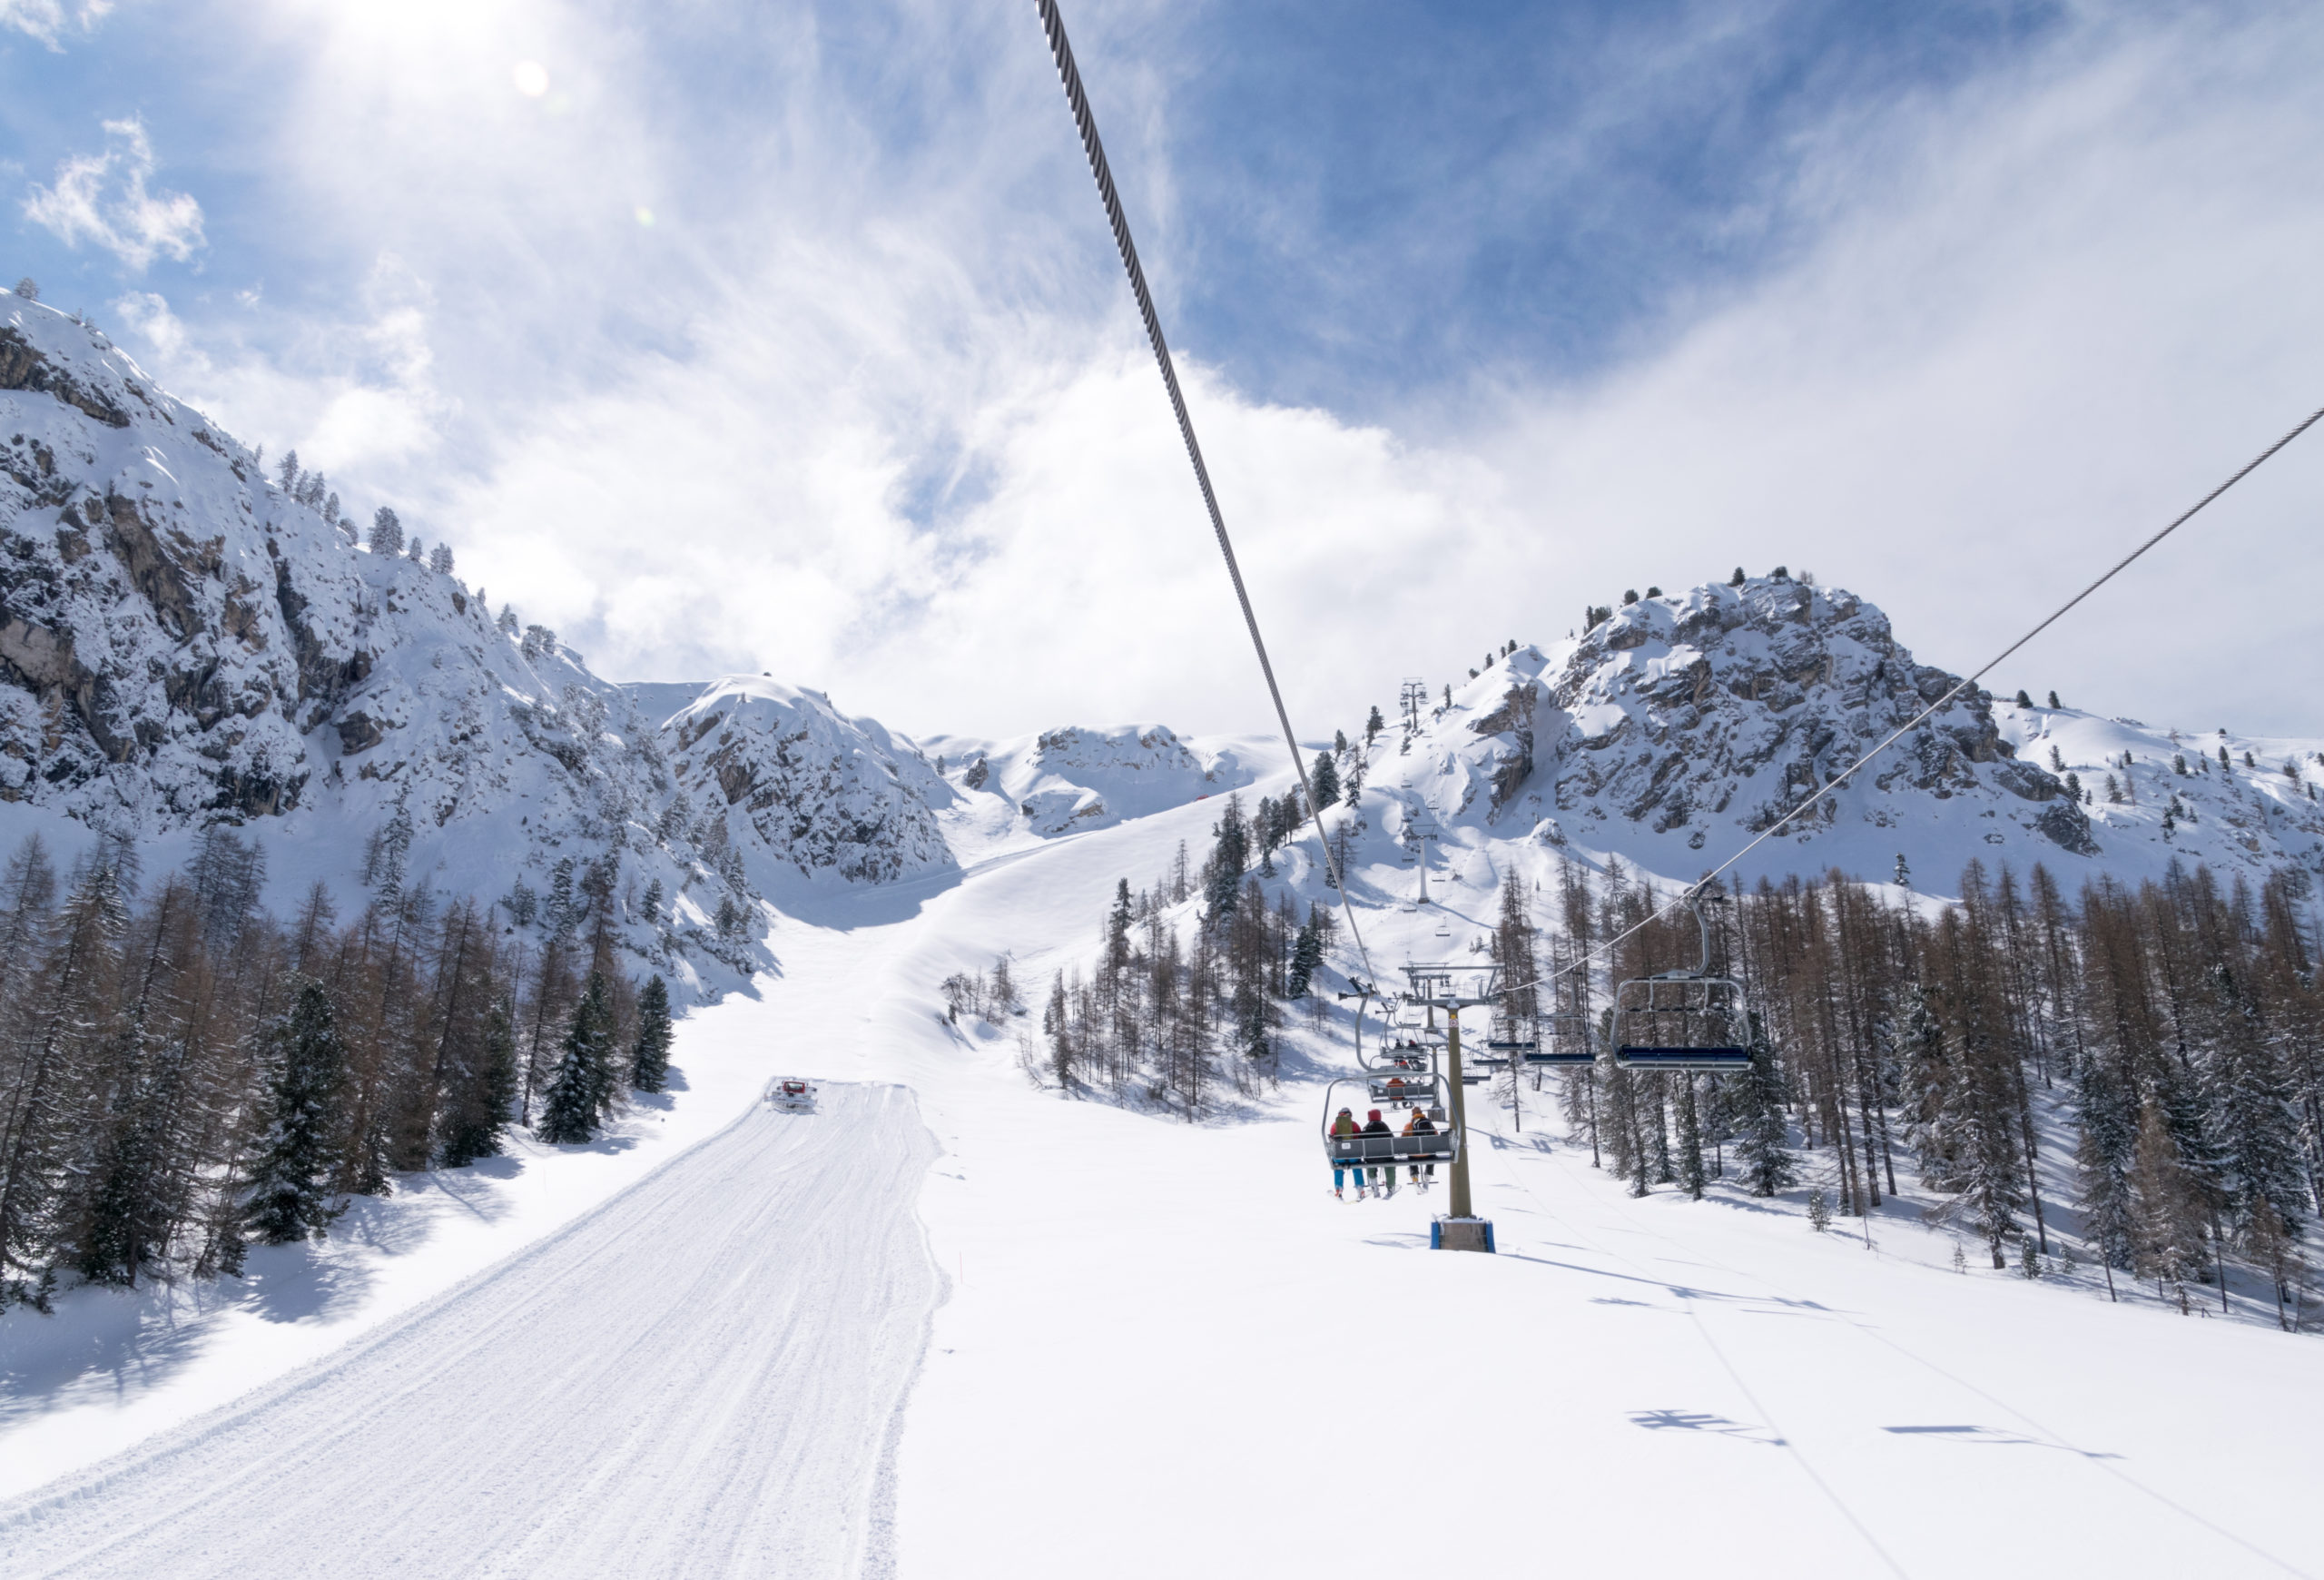 Ski slopes and snow holidays in Cortina d'Ampezzo in the Italian Dolomites